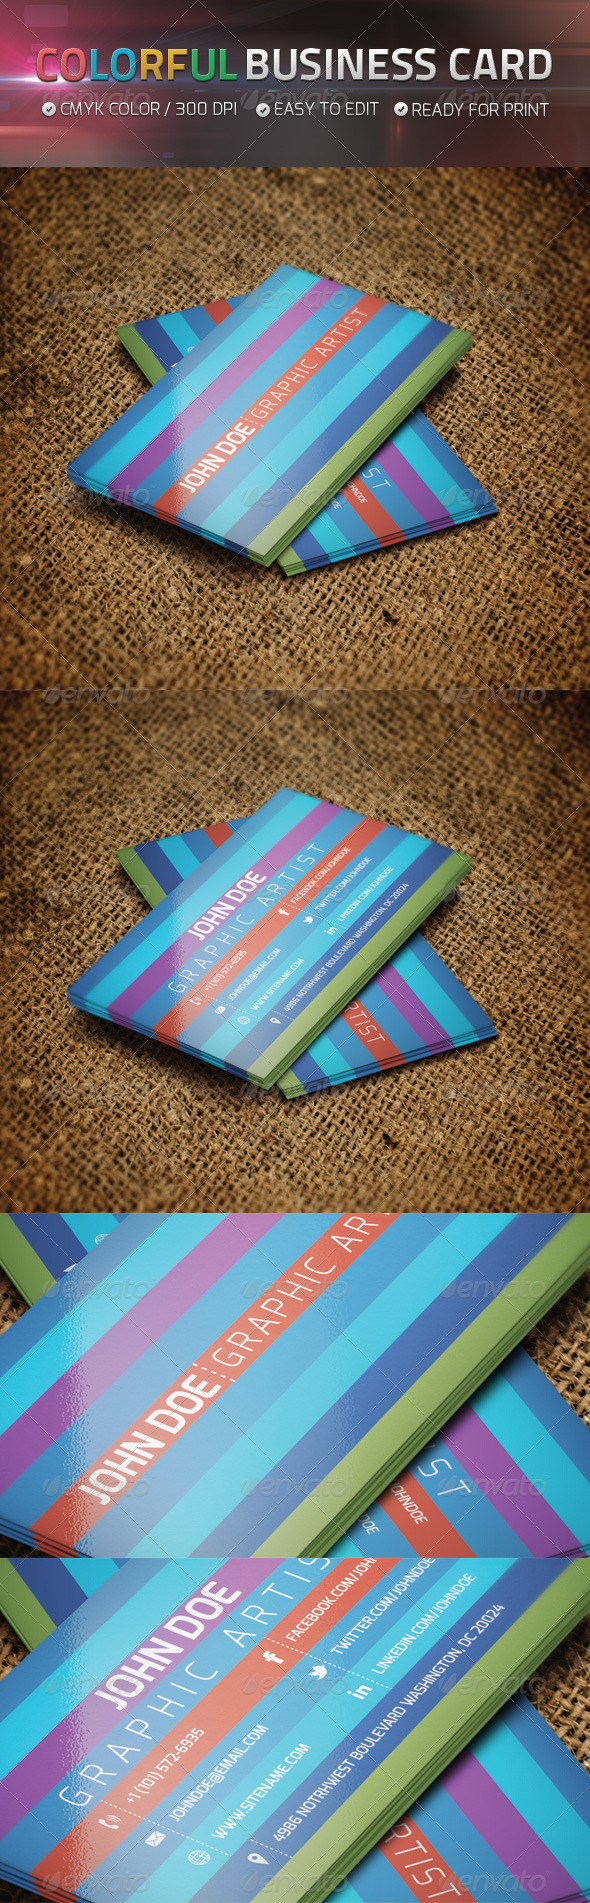 GraphicRiver Colorful Business Card V5 5039655